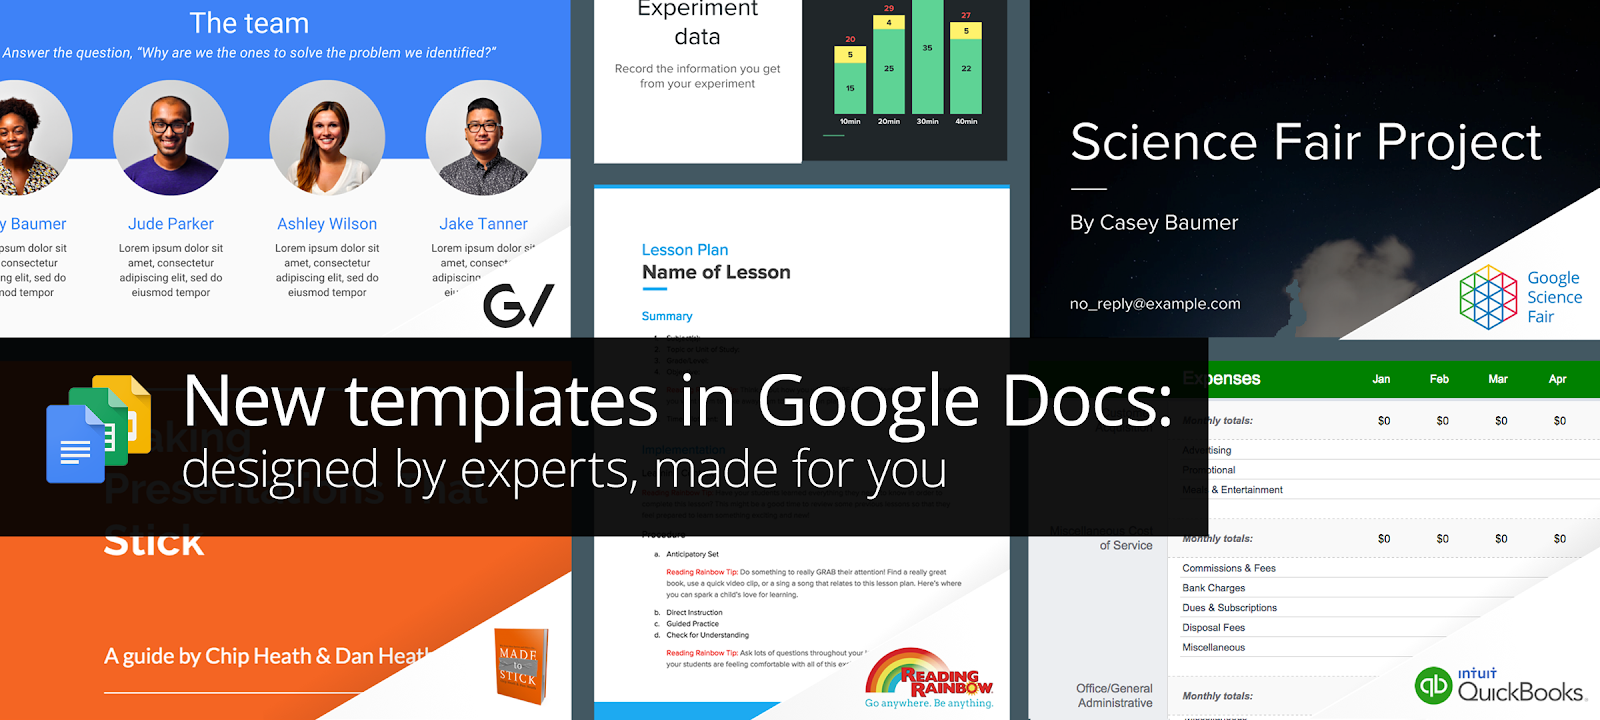 google docs new templates designed by experts